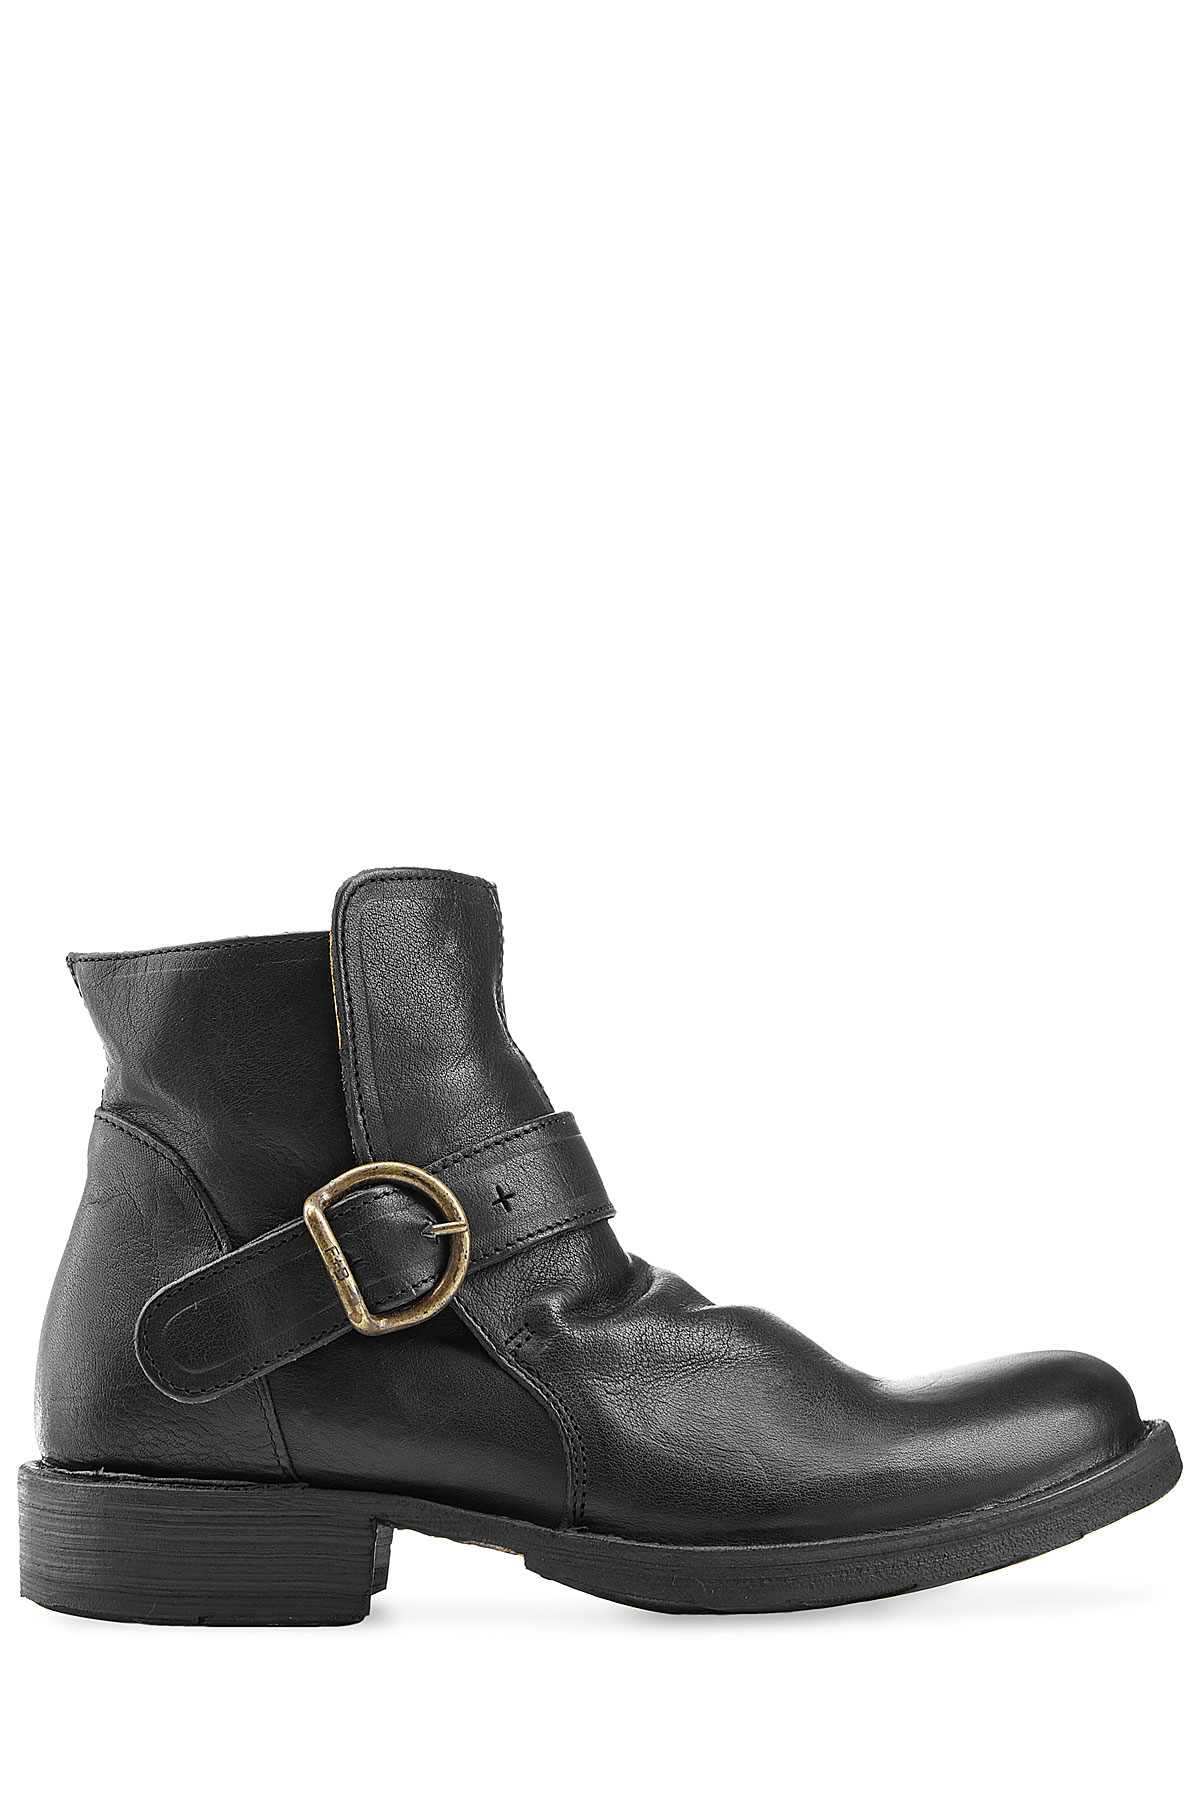 fiorentini baker eternity 752 leather ankle boots in. Black Bedroom Furniture Sets. Home Design Ideas